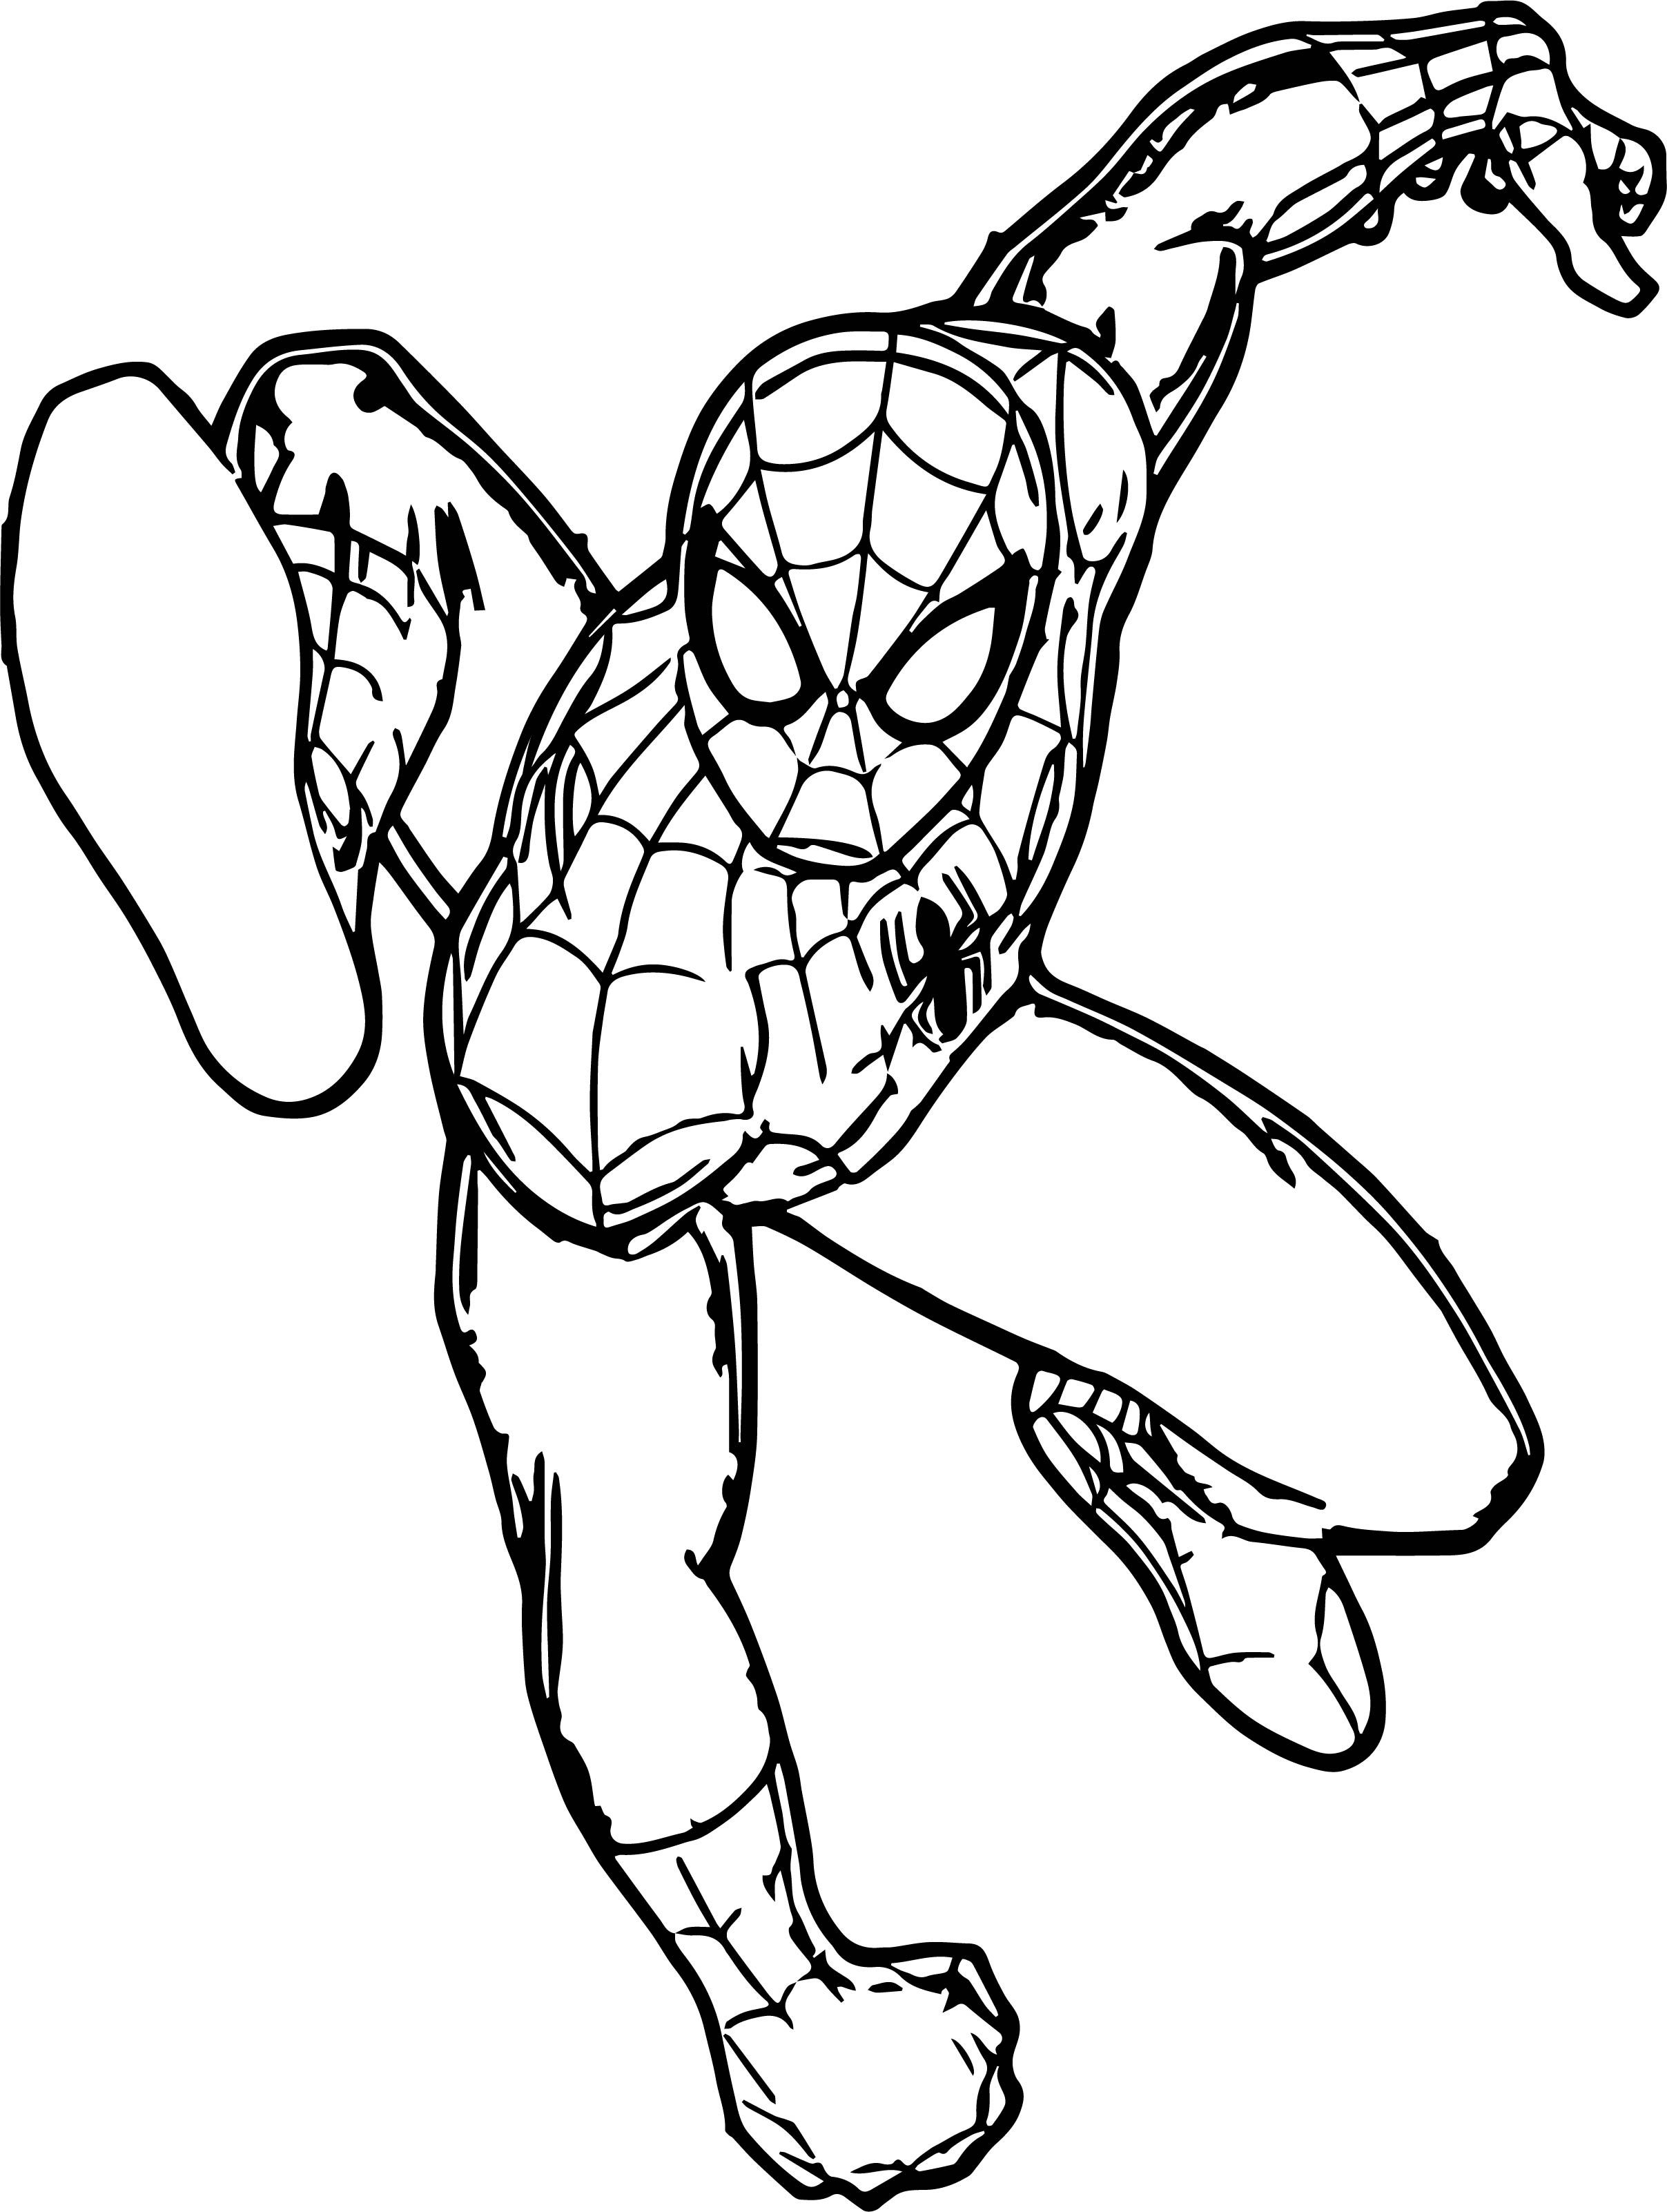 Nice Spiderman Leap Spider Man Coloring Page Dinosaur Coloring Pages Coloring Pages Snowman Coloring Pages